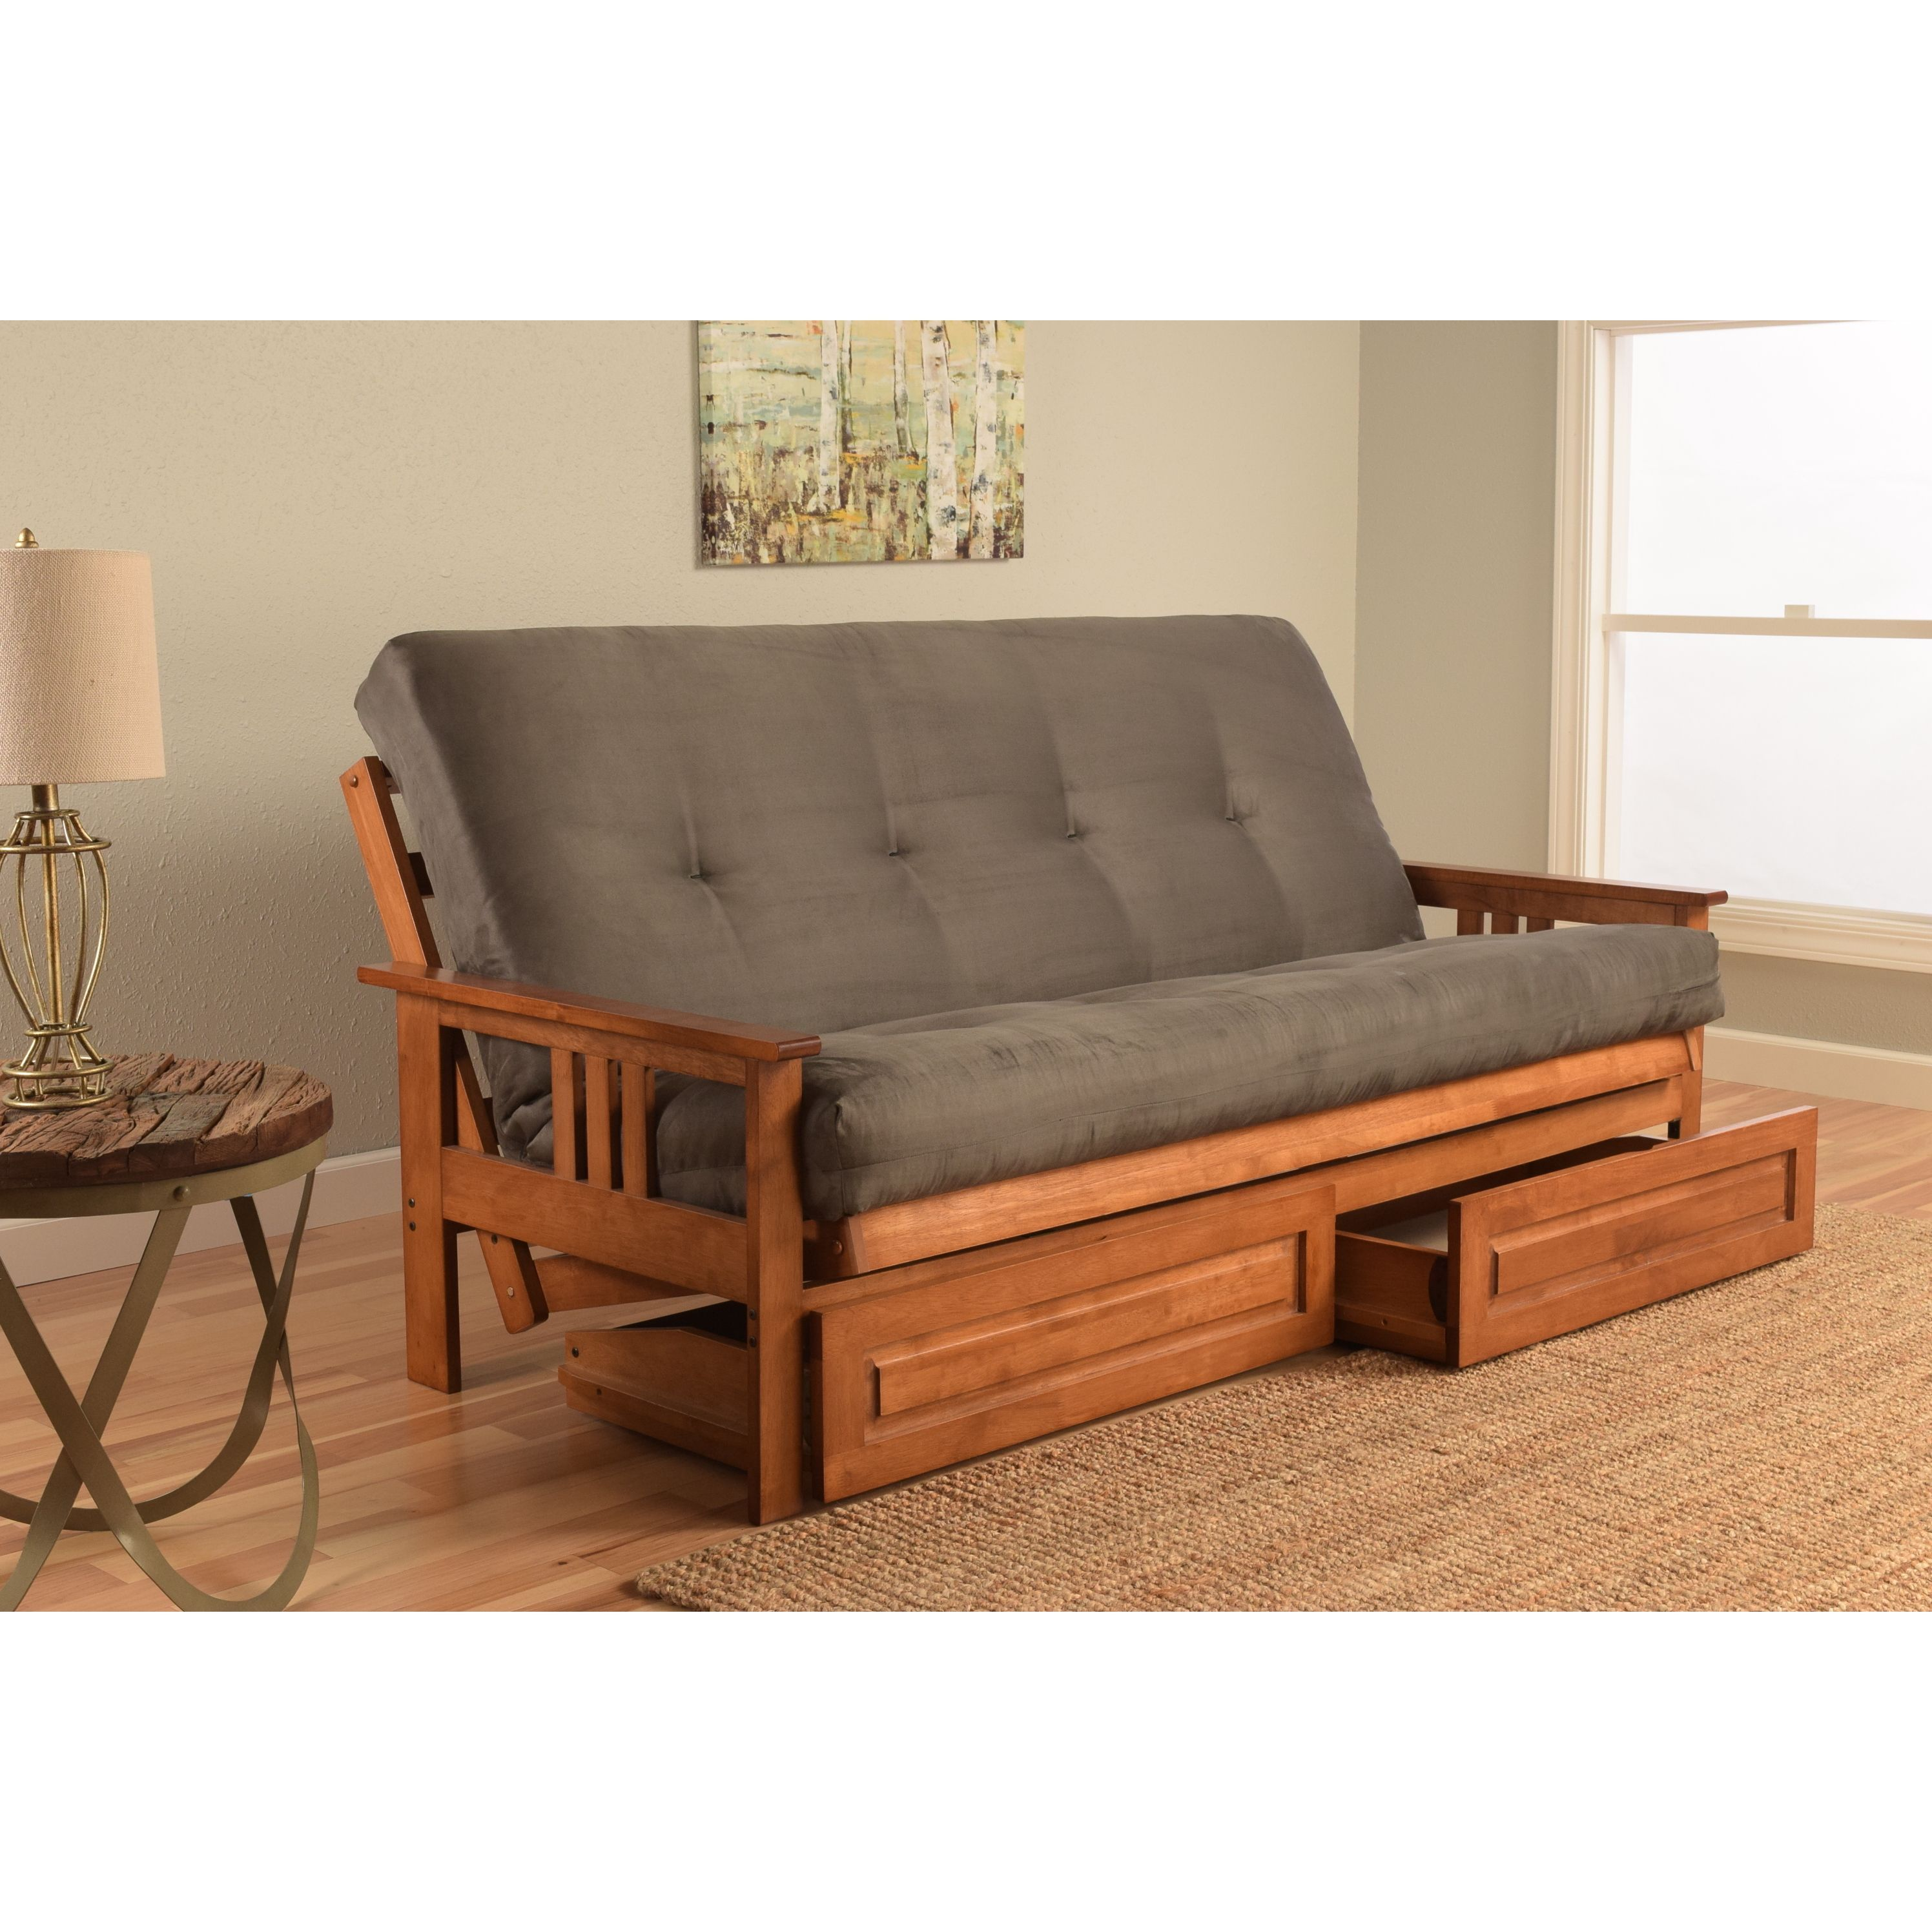 Somette Beli Mont Futon Set With Barbados Frame Suede Mattress And Storage Drawers